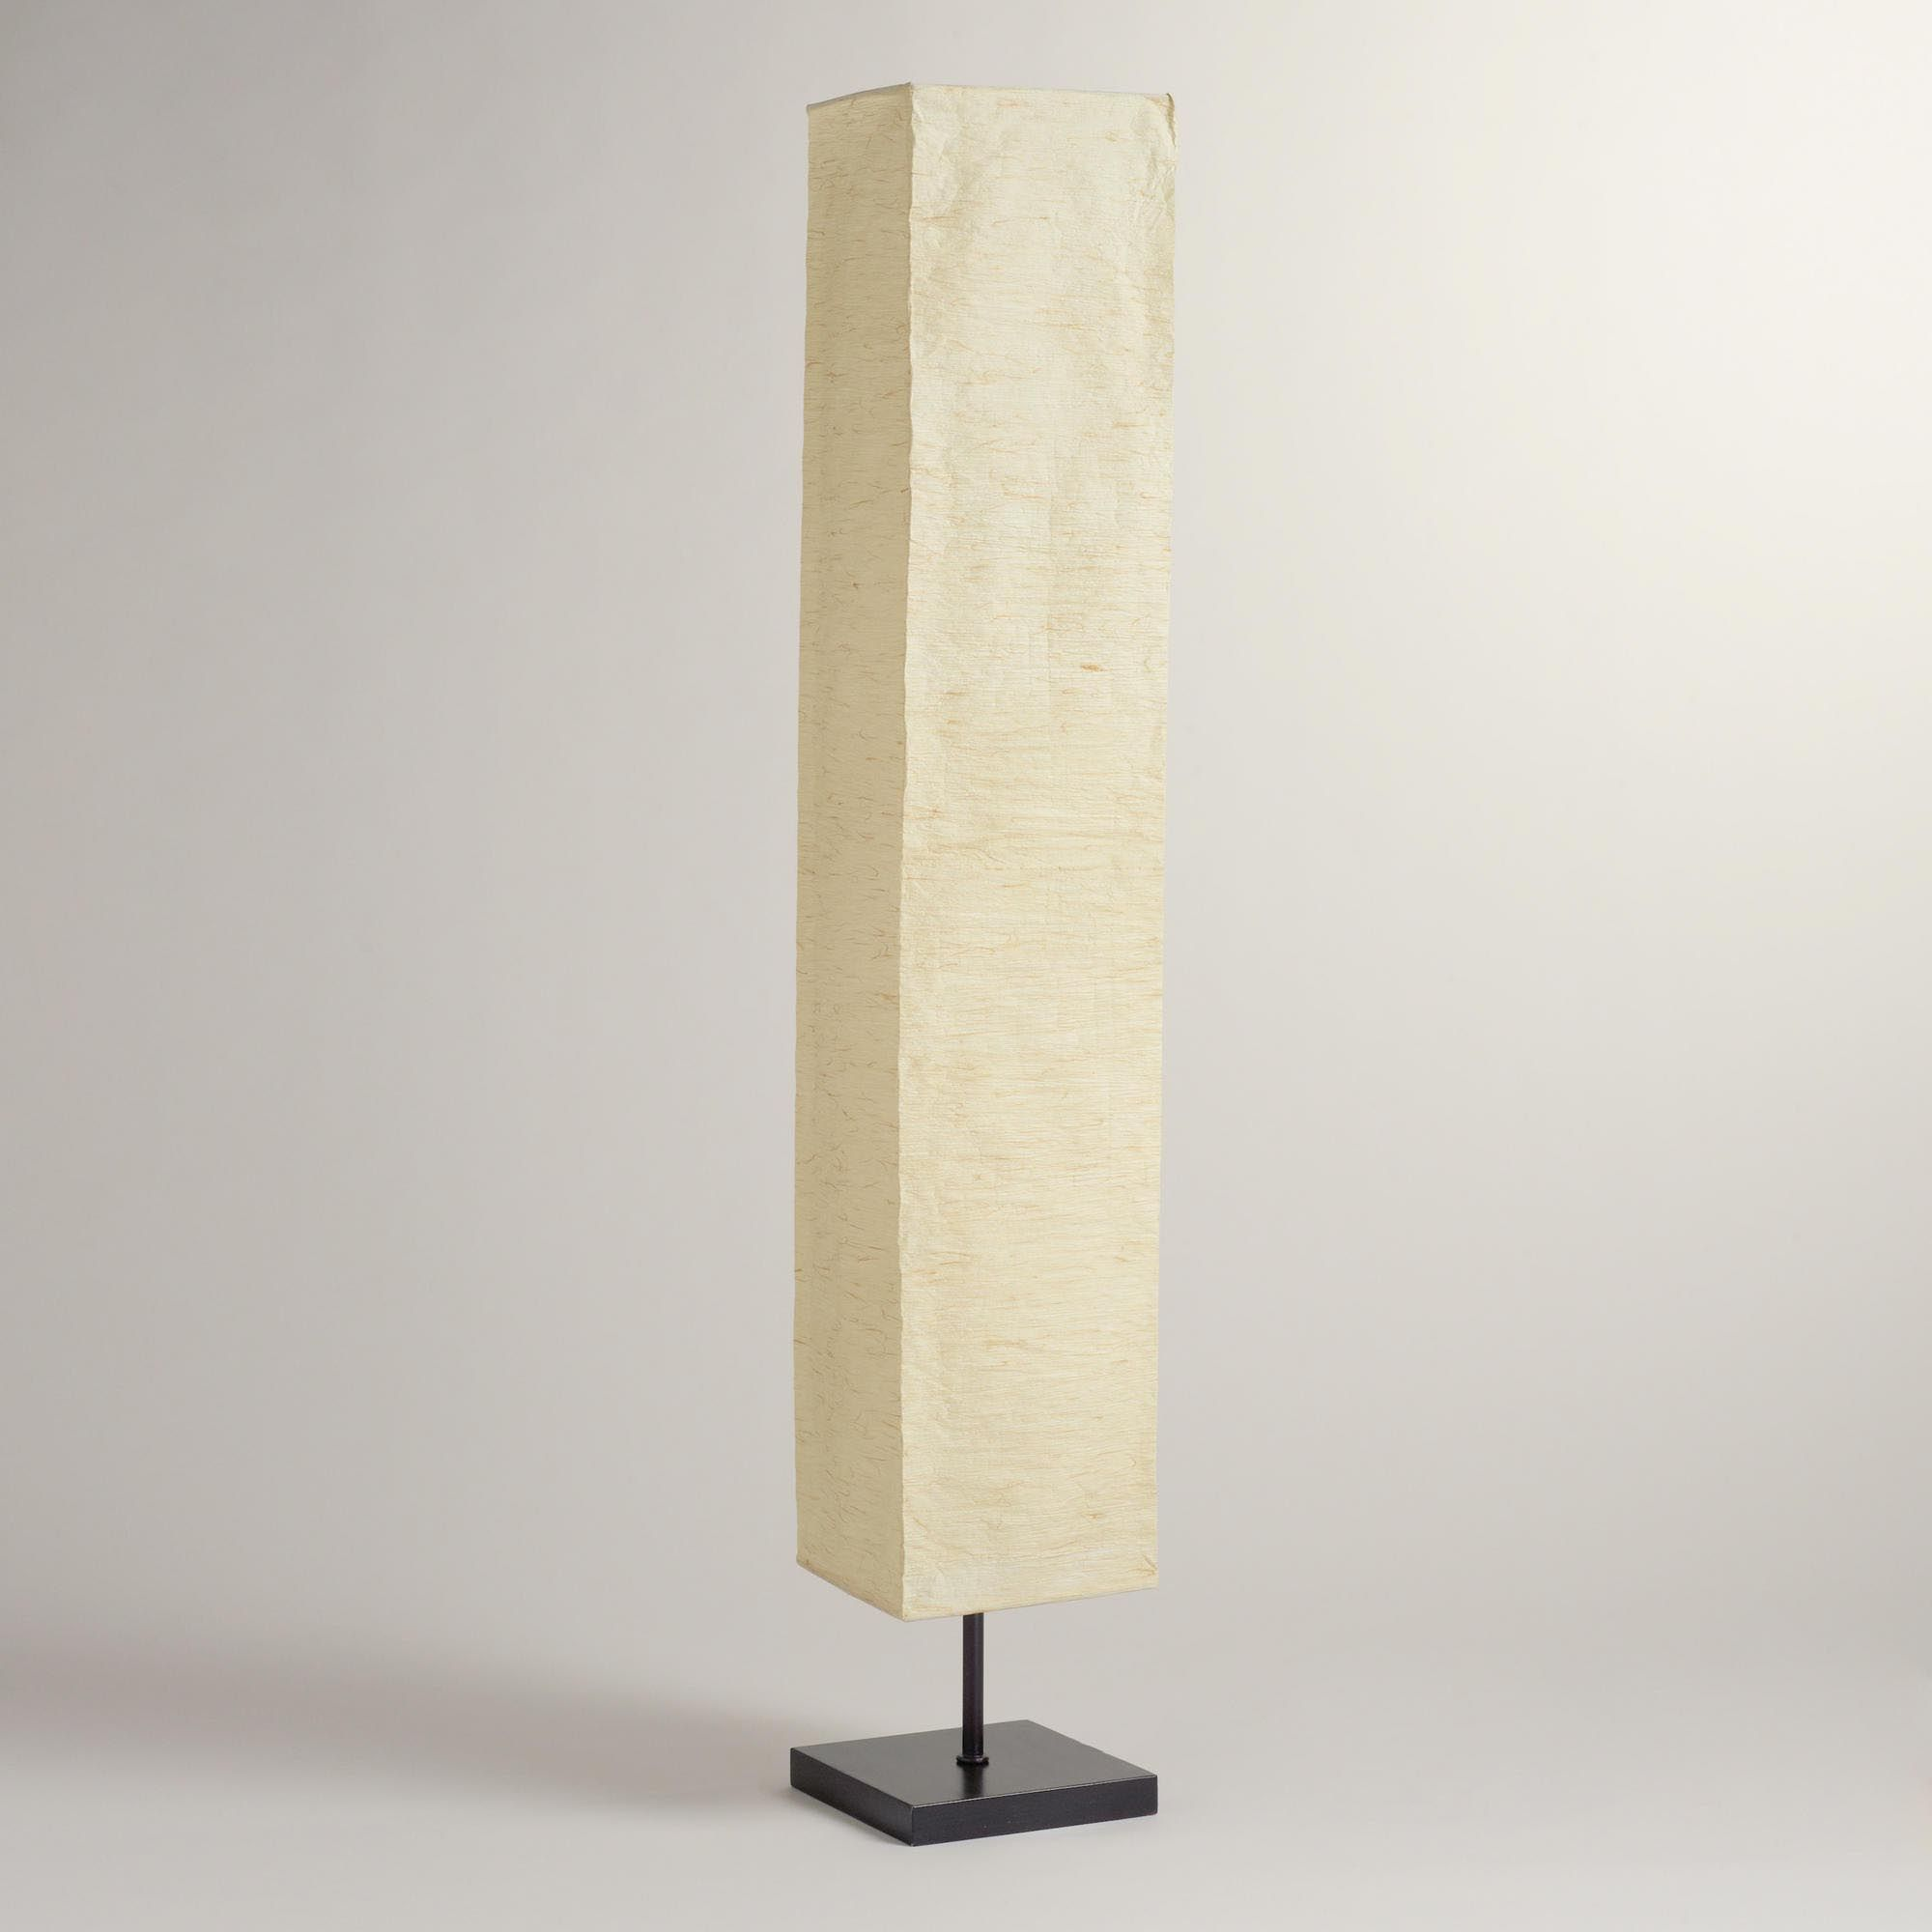 Anese Paper Floor Lamps Lamp